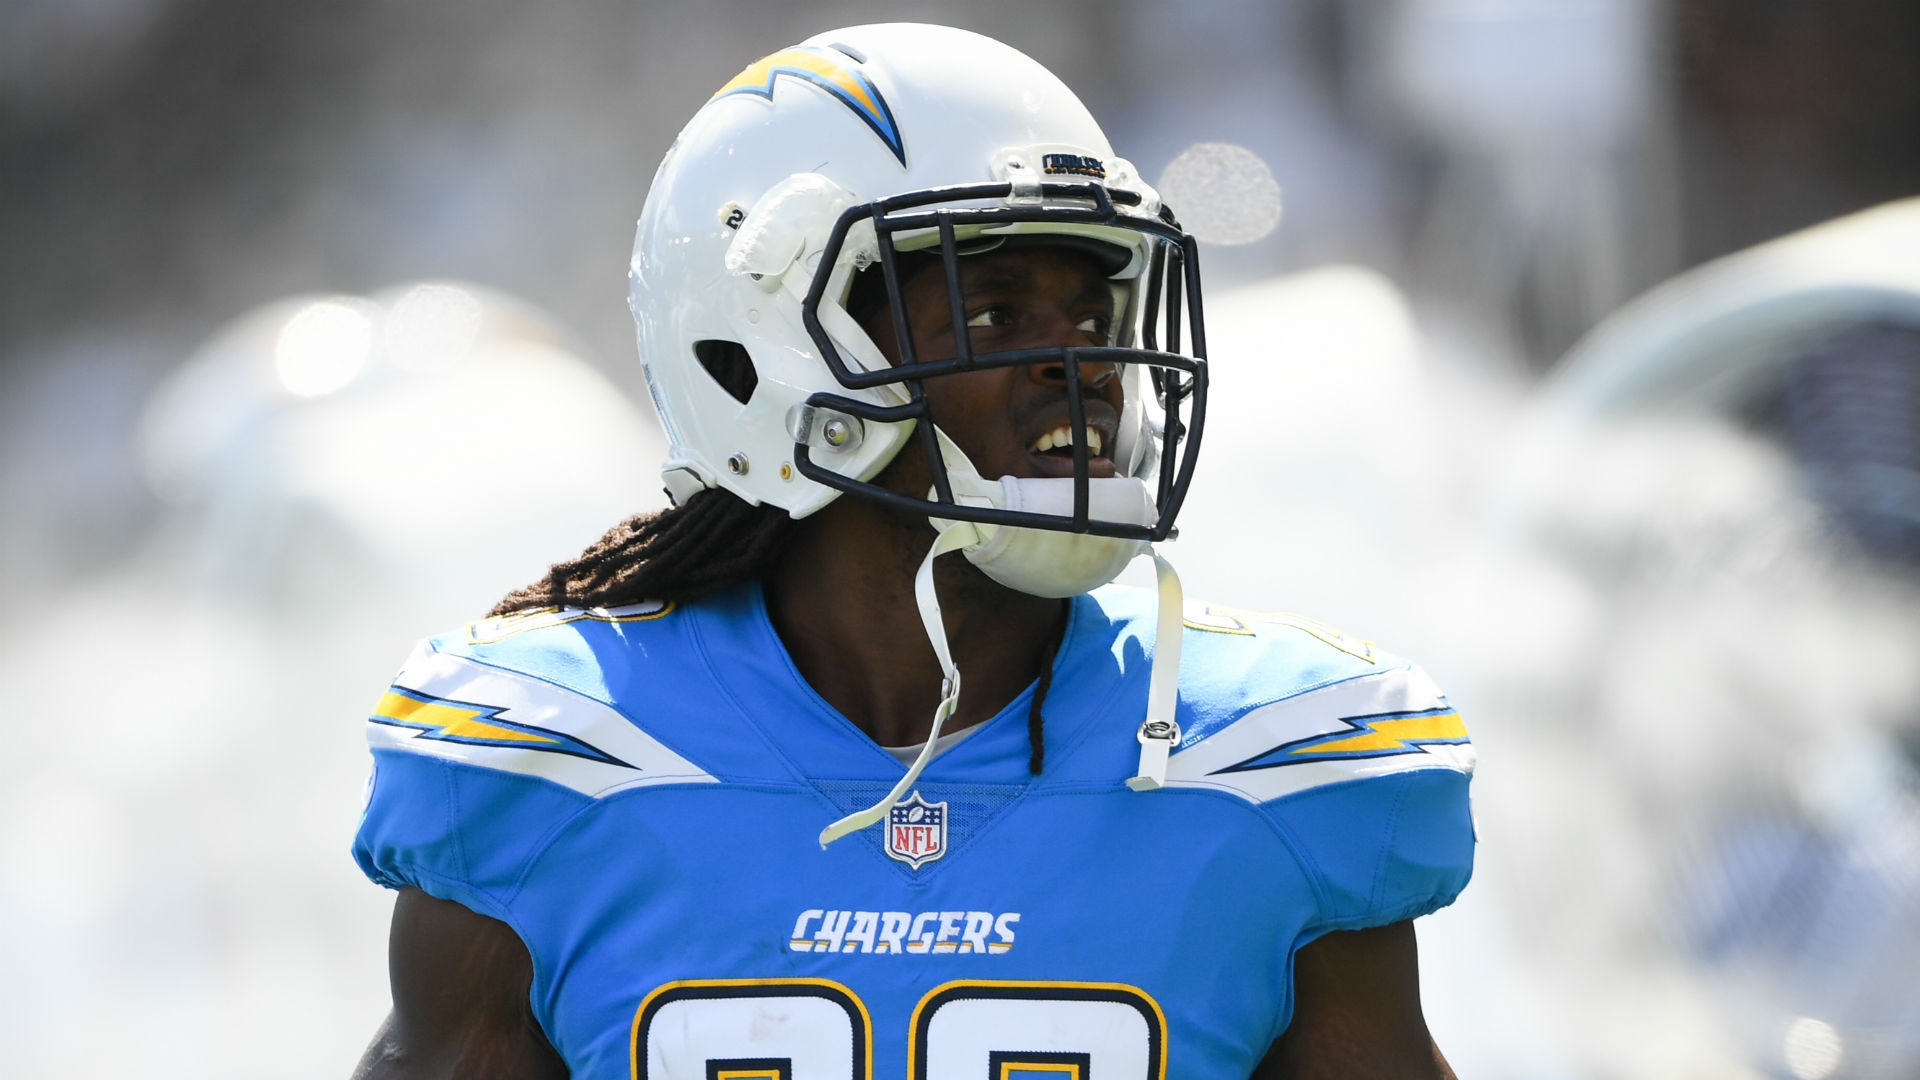 Chargers' Gordon questionable for Sunday's game vs. Titans